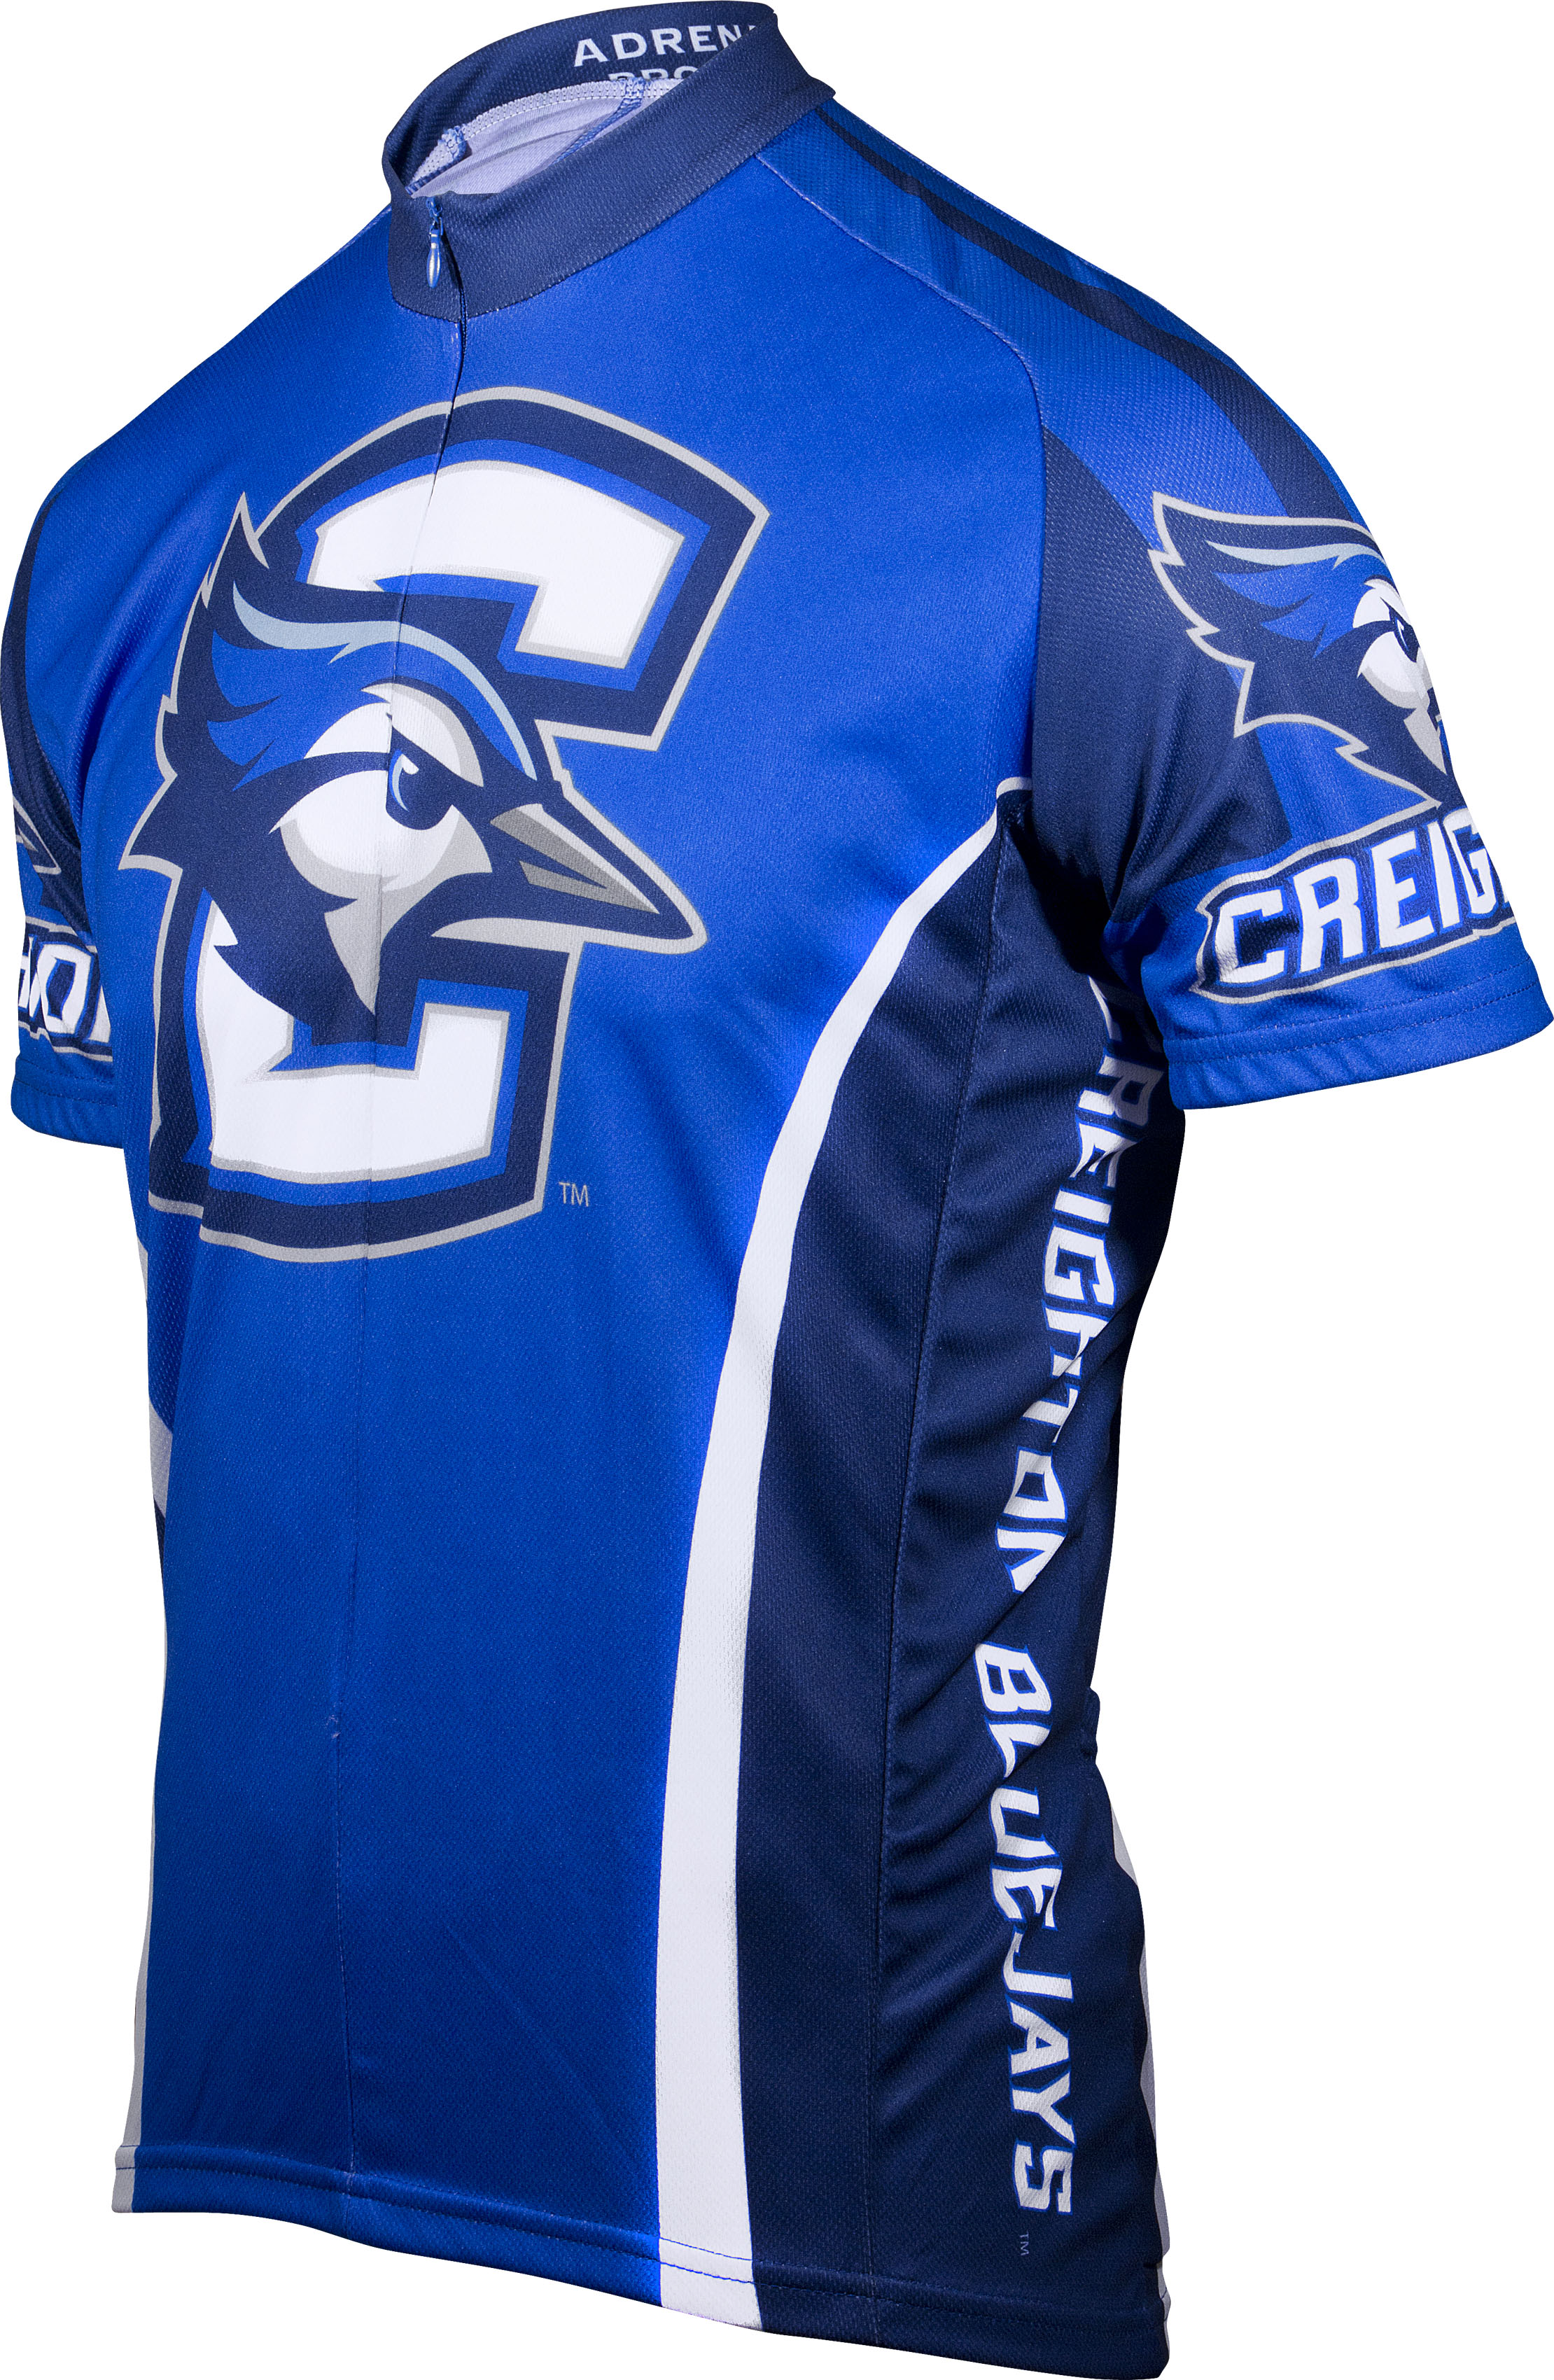 Creighton University Cycling Jersey Small